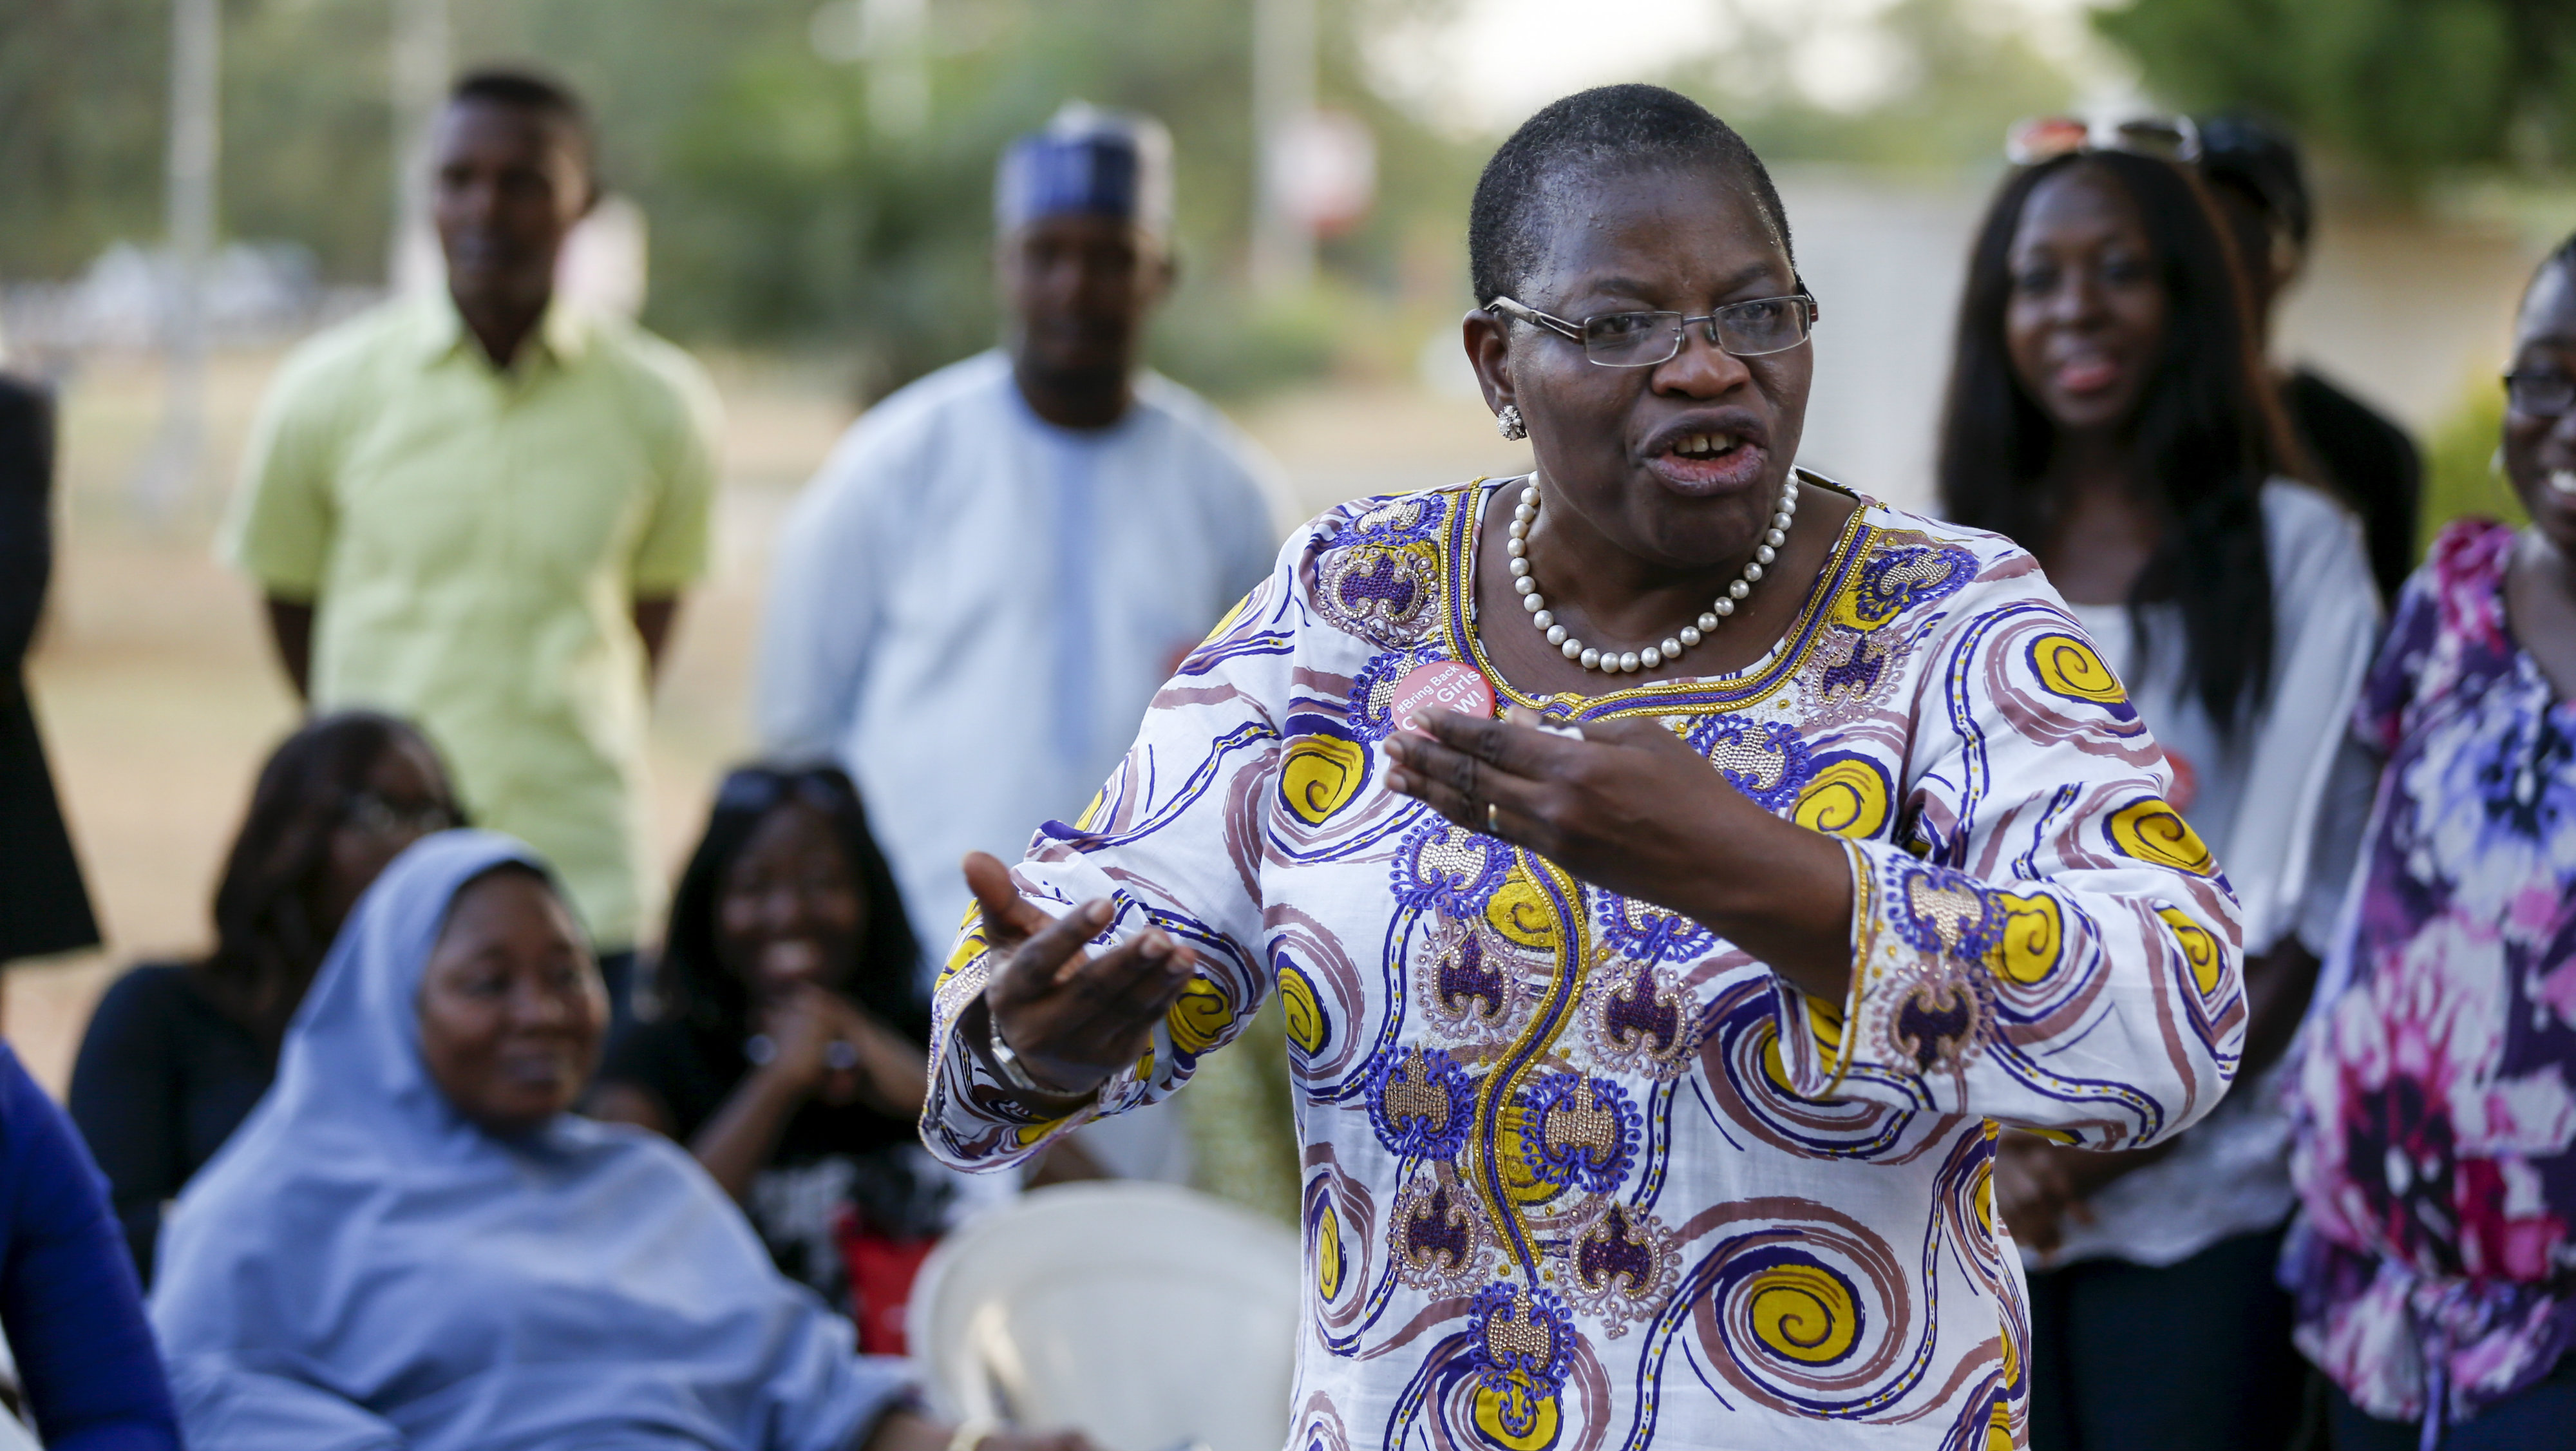 Dr Oby Ezekwesili expresses support about the rescue of some women and girls from Sambisa forest while a Nigerian protest group continues their sit-in about the girls that are still missing from Chibok, in Abuja, Nigeria April 29, 2015. Nigeria's military said on Wednesday it had transported nearly 300 women and girls rescued from Boko Haram to the hilly border town of Gwoza. The 200 girls and 93 women were freed from four camps during an army operation in northeastern Borno province as the Nigeria military bears down on what are believed to be Boko Haram's final strongholds in the Sambisa forest. The military said on Tuesday initial enquiries suggested the freed women did not include roughly 200 missing schoolgirls seized a year ago from the northern village of Chibok, whose capture drew global attention to the insurgency in Nigeria. REUTERS/Afolabi Sotunde